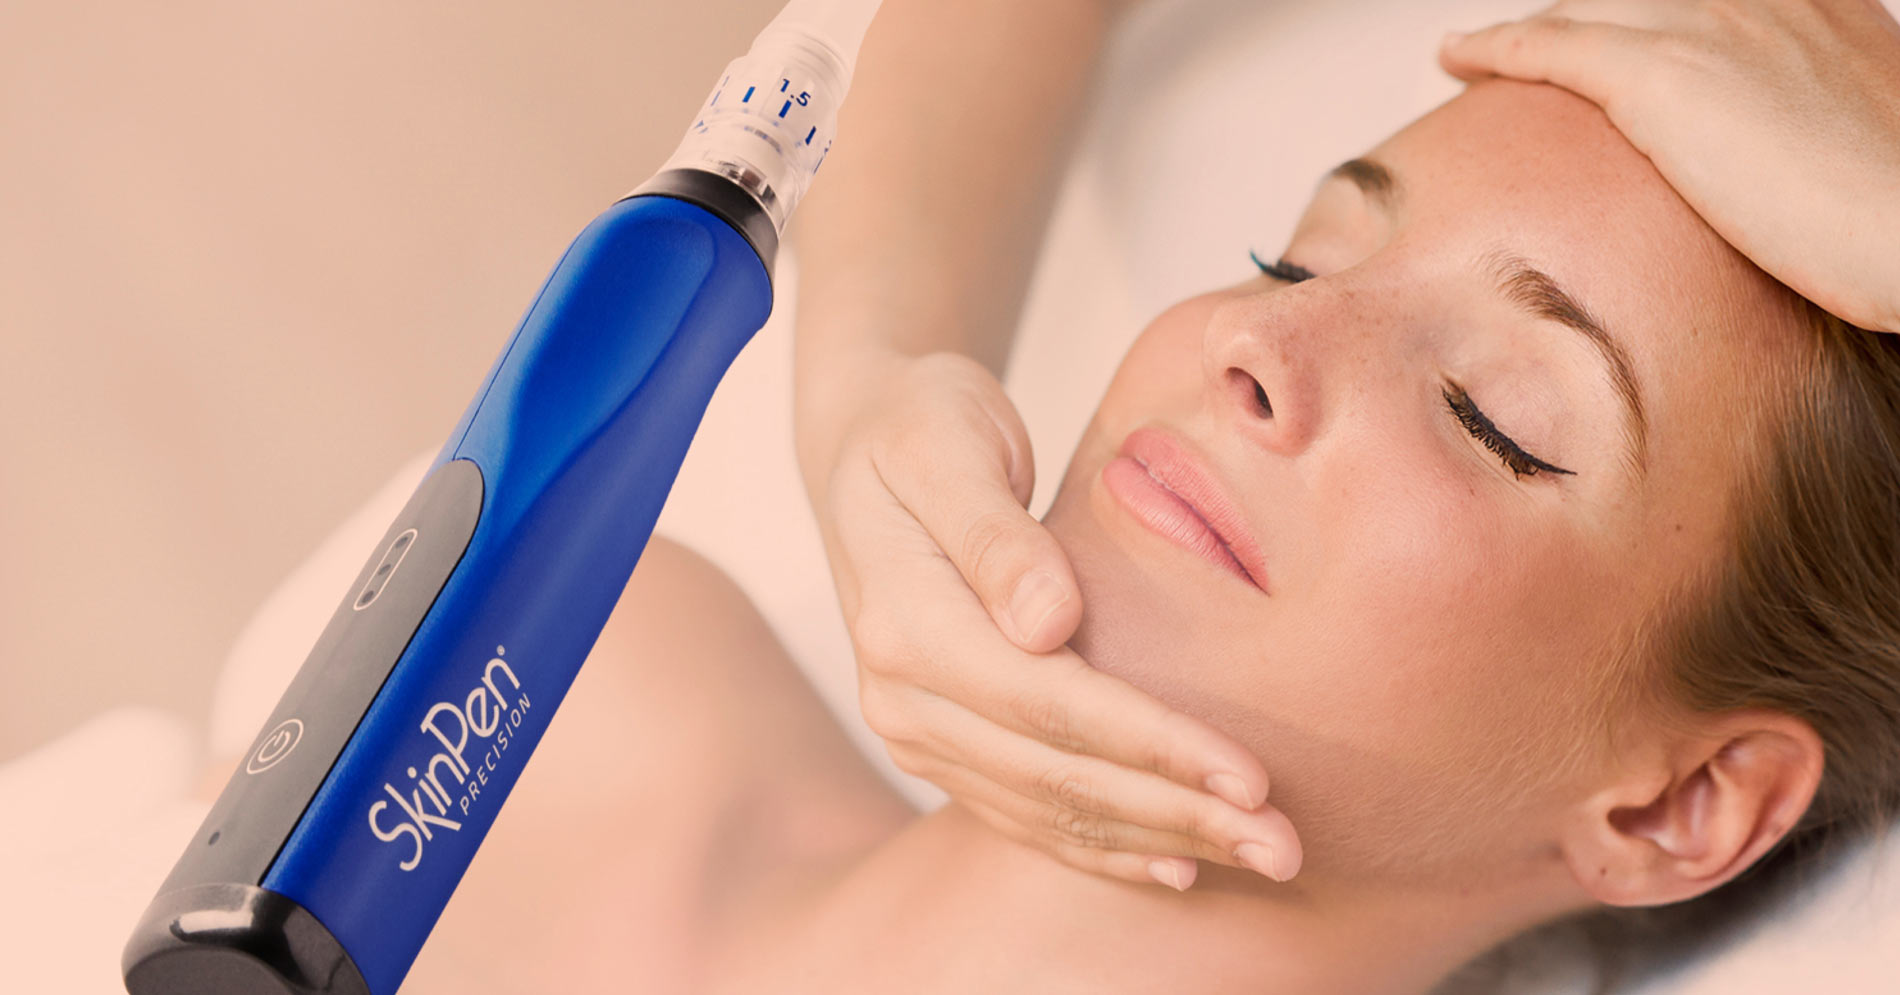 Introducing our new SkinPen at Pure Dermatology. Purchase a package of 3 treatments (face) and receive 3 neck treatments FREE! Package savings: $275.00.